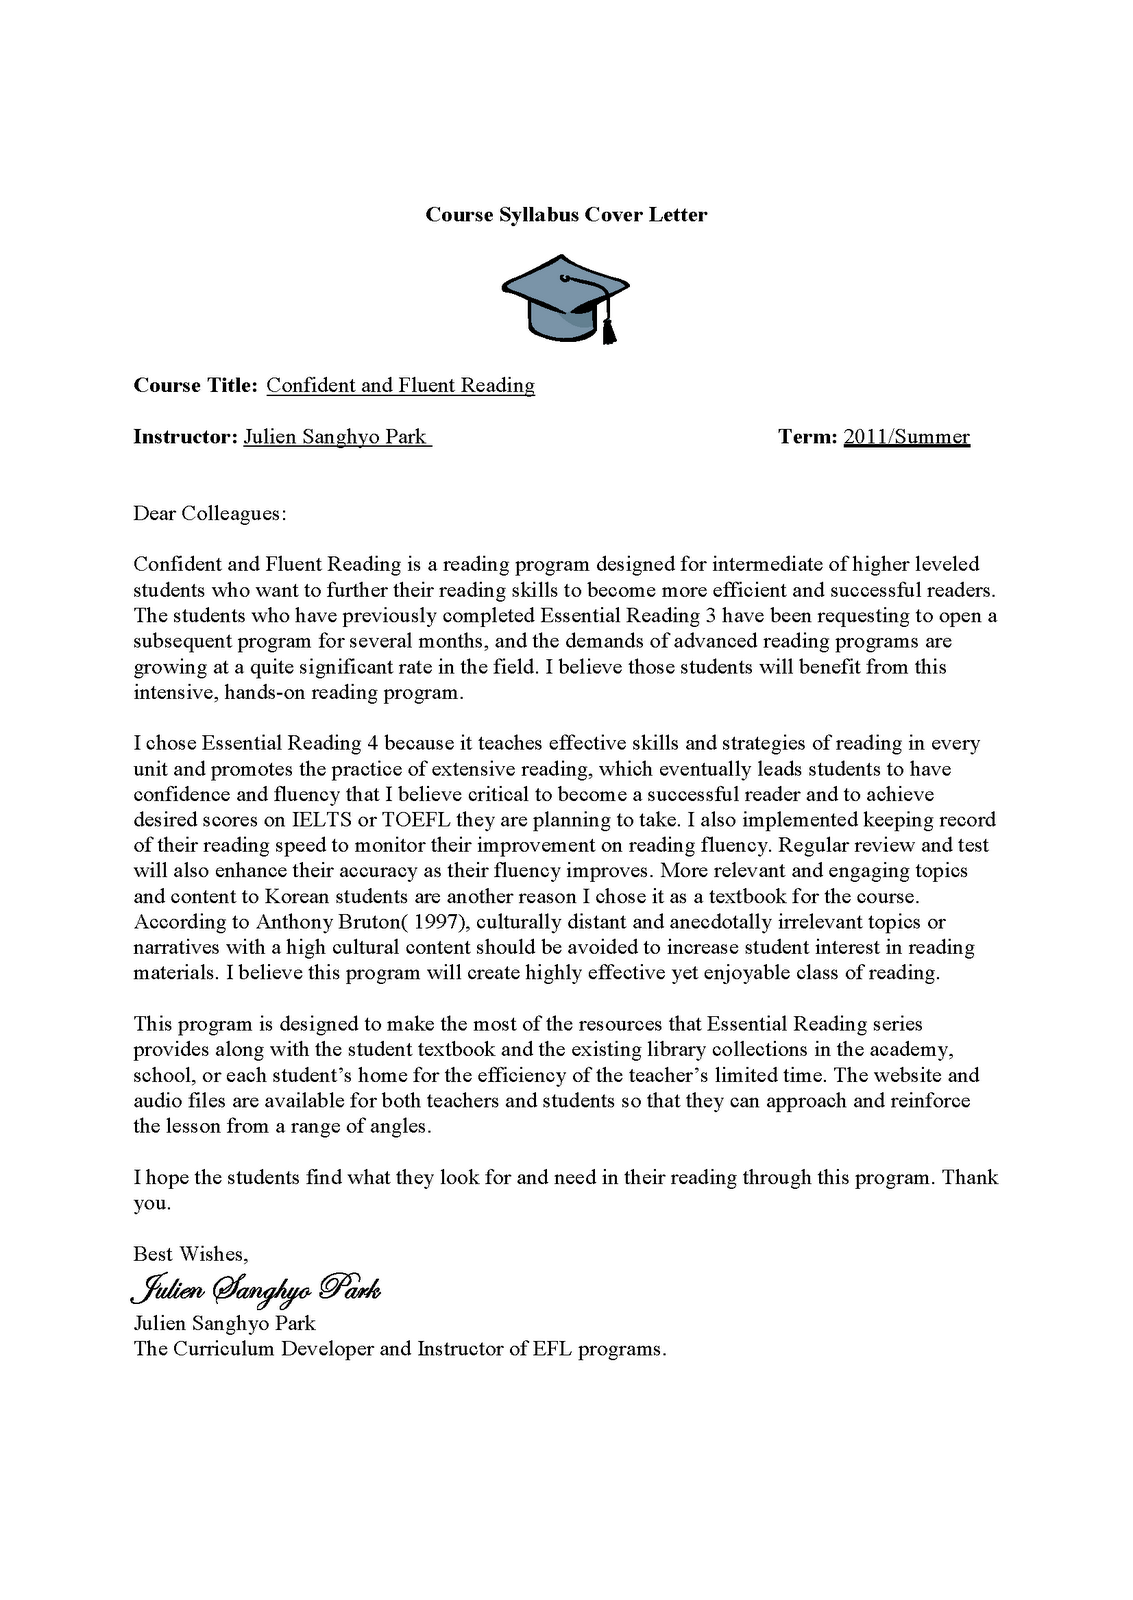 esl teacher cover letter sample english second language application - Esl Teacher Cover Letter